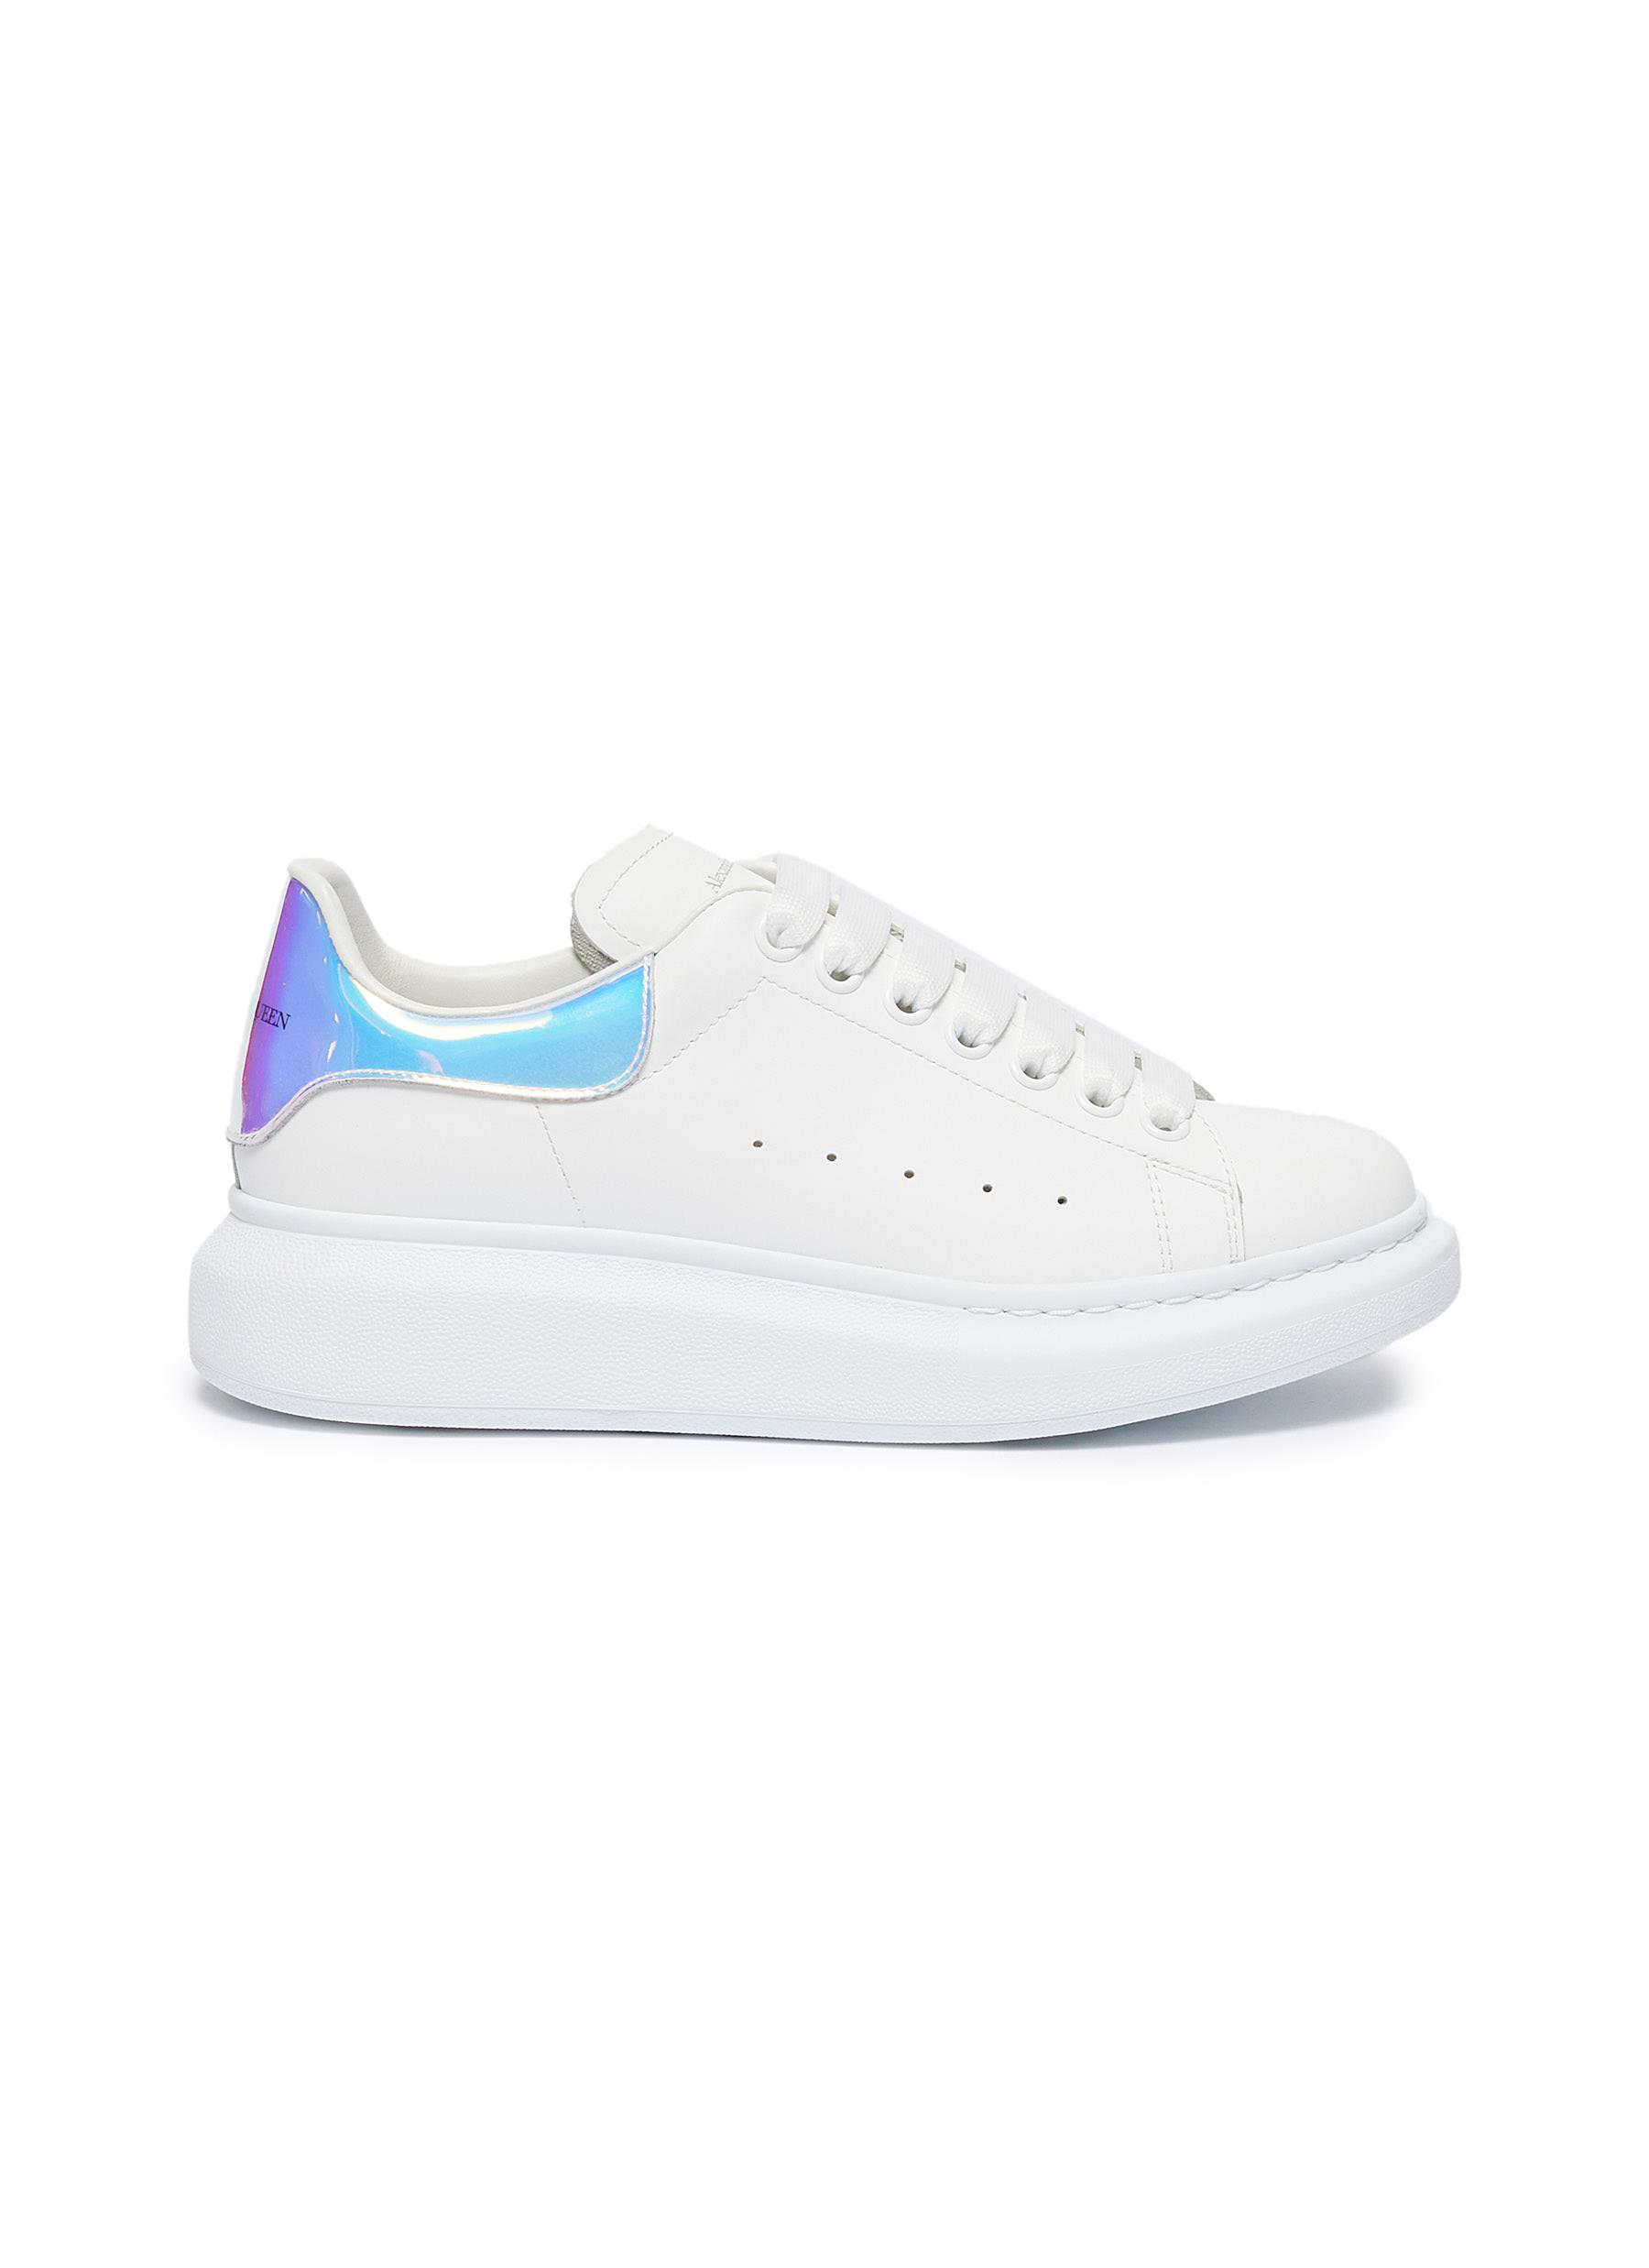 Oversized Sneaker in leather with holographic collar by Alexander Mcqueen